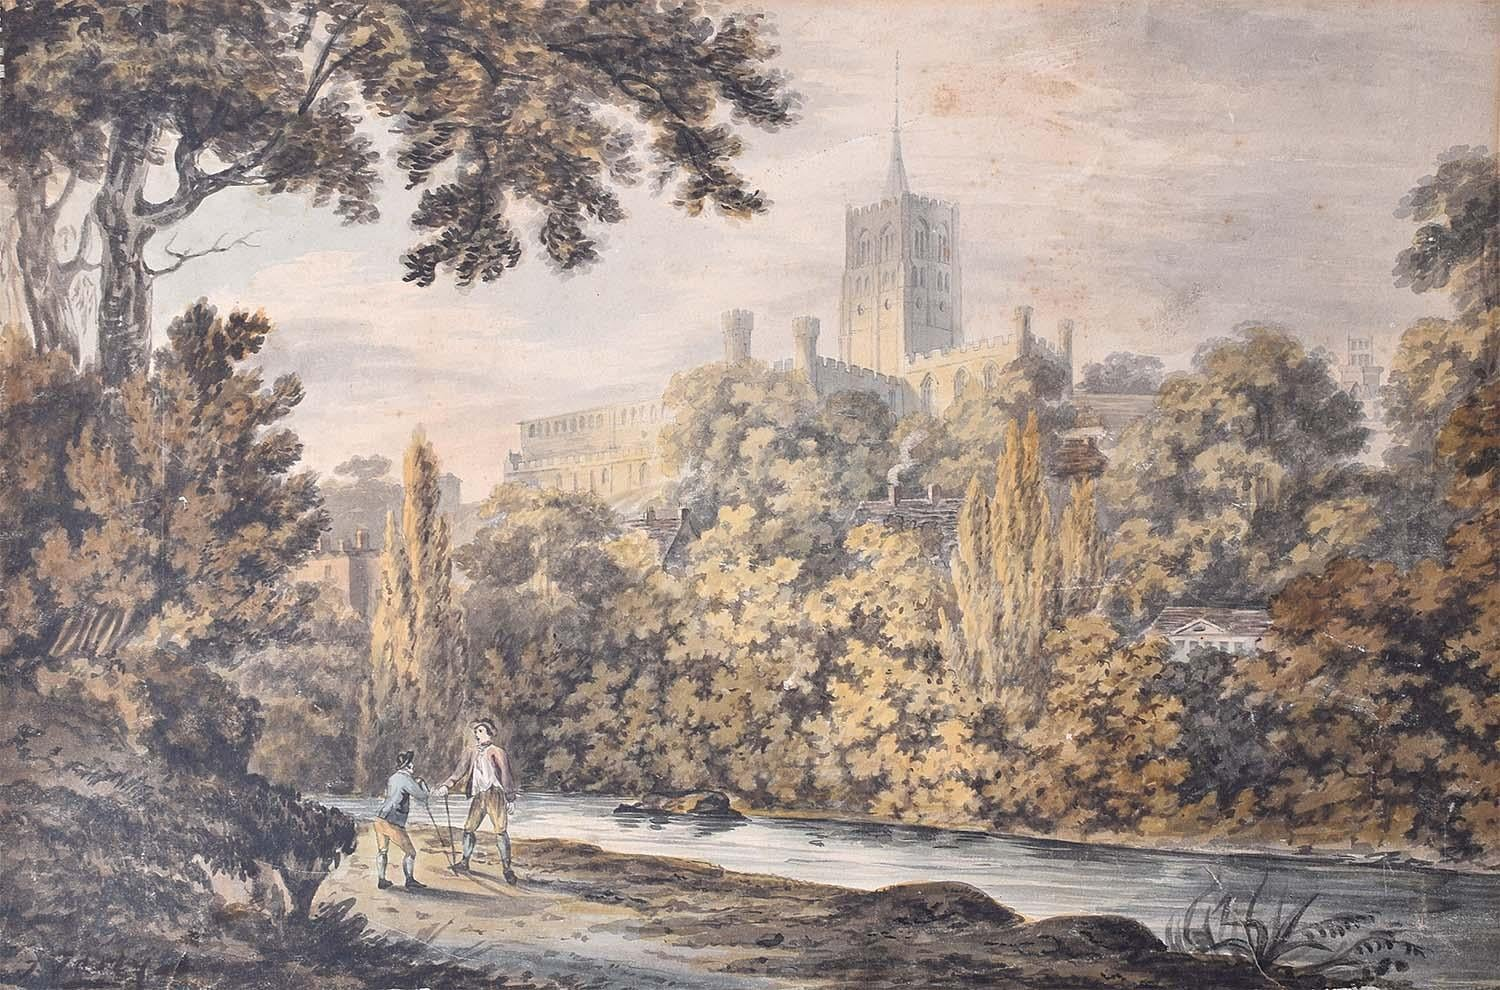 Prospect of Durham from the River 19th Century Watercolour